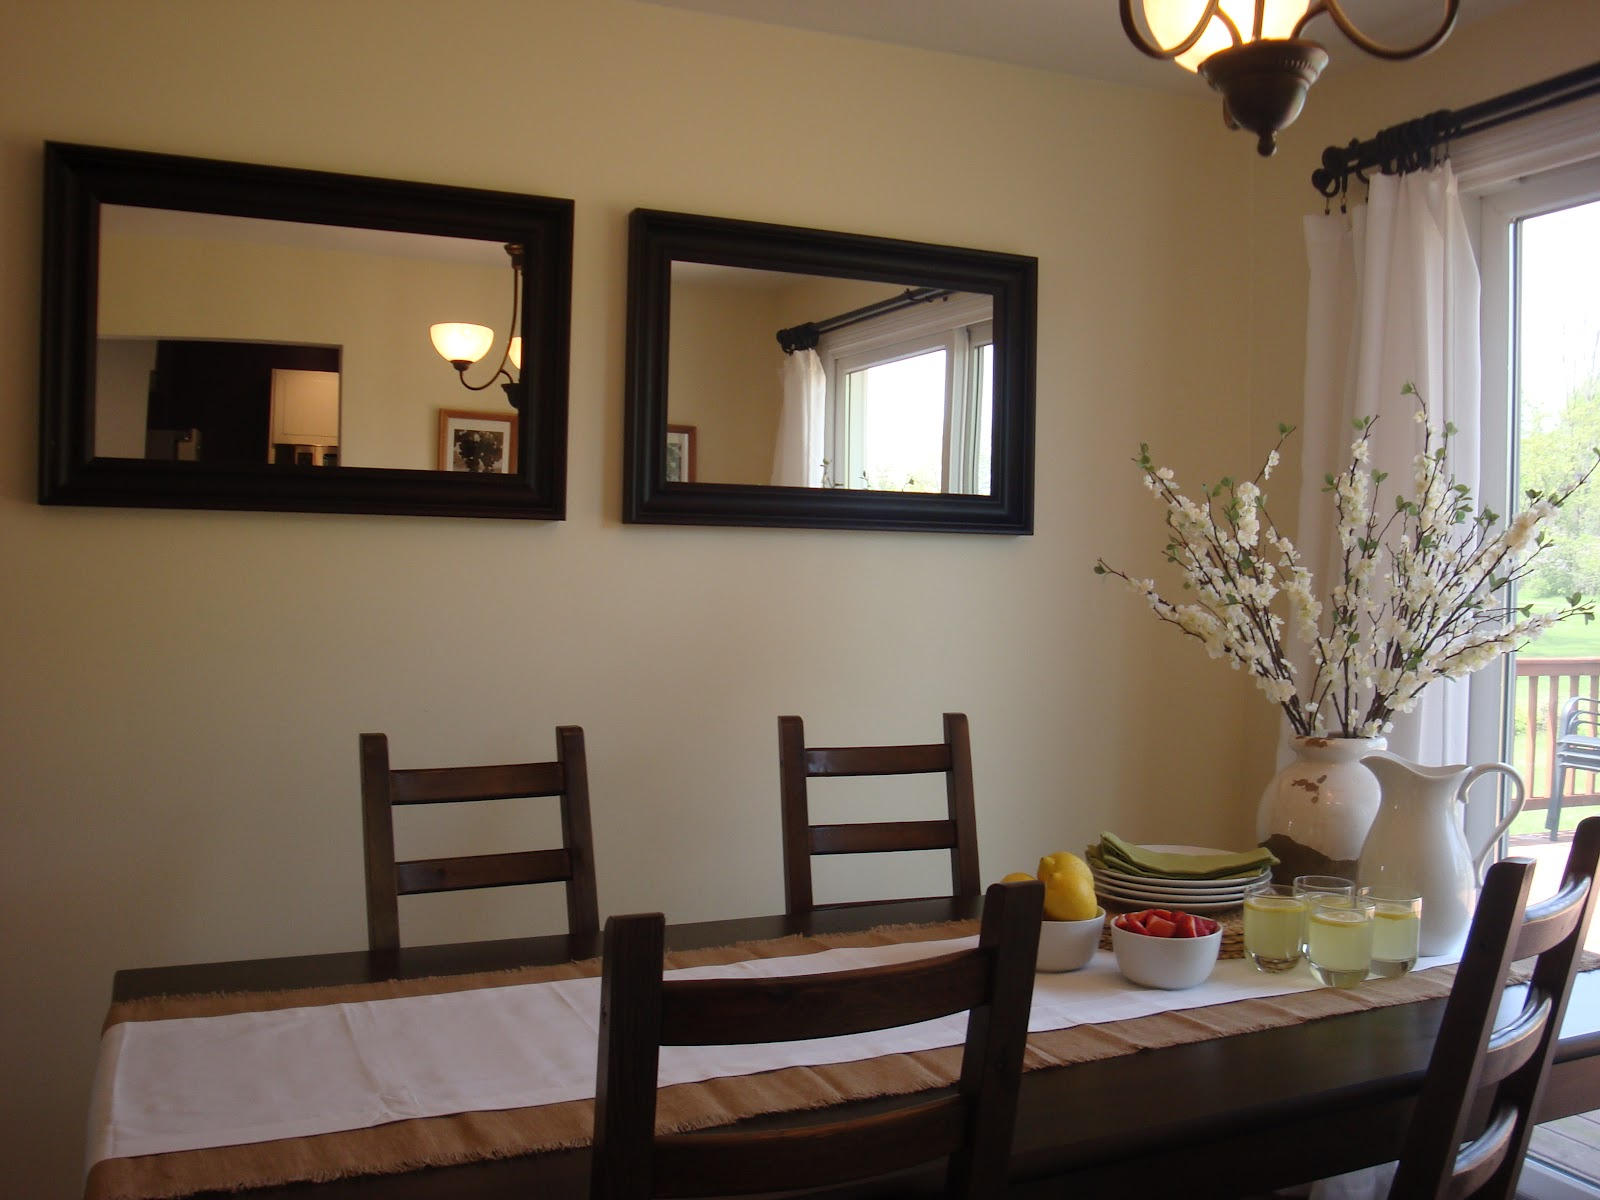 Ashley 39 s nest decorating a dining room - How to decorate a dining room ...